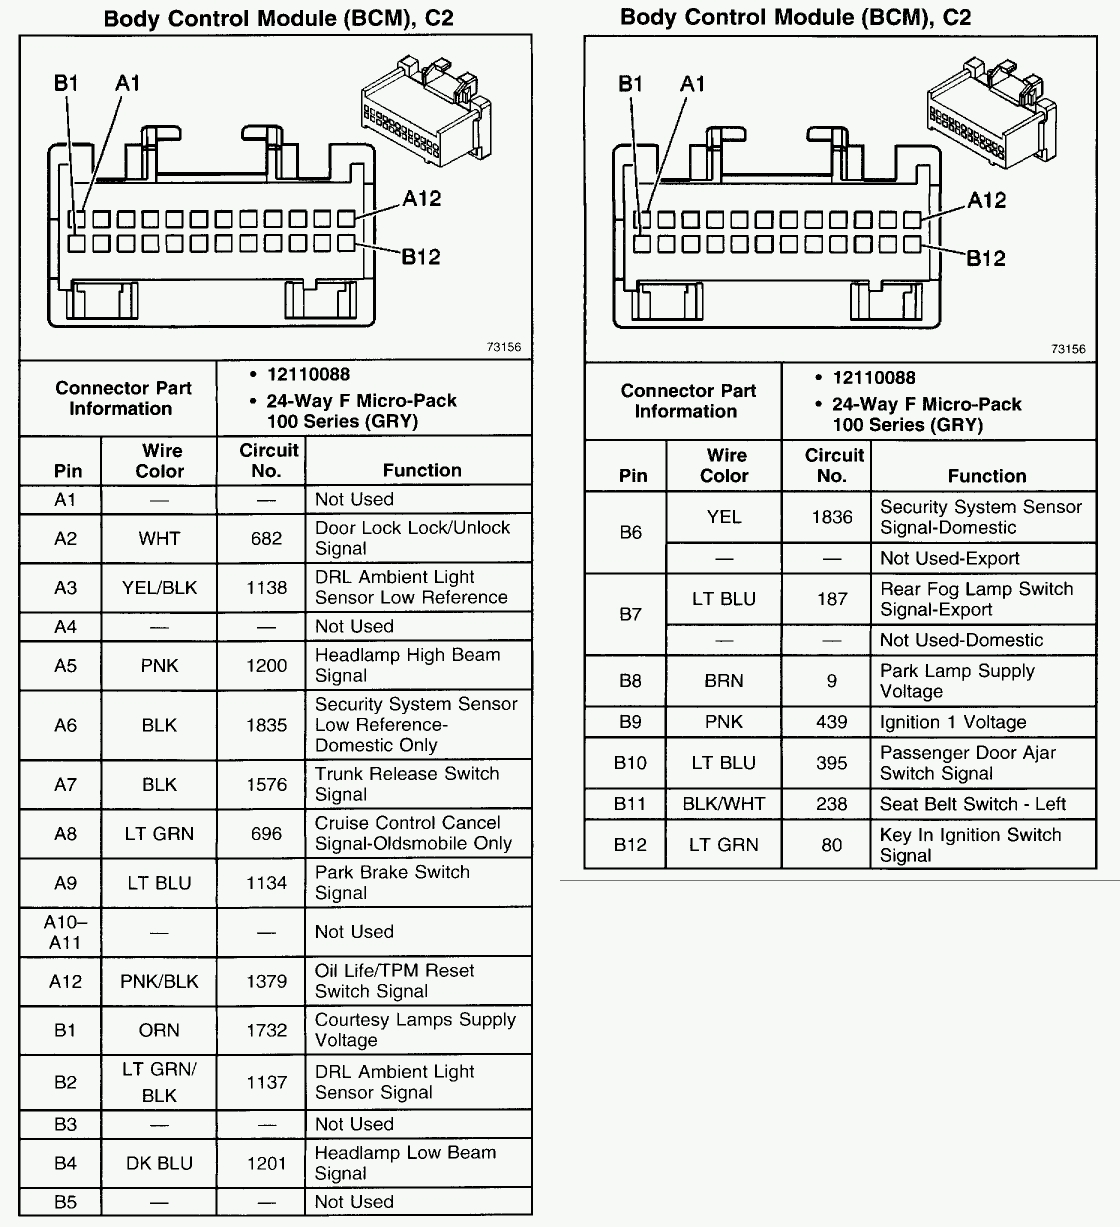 pontiac grand prix radio wiring diagram 2013 07 17 171026 2000 dic intended for 2004 pontiac grand prix parts diagram pontiac grand prix radio wiring diagram 2013 07 17 171026 2000 dic 2000 grand prix radio wiring diagram at panicattacktreatment.co